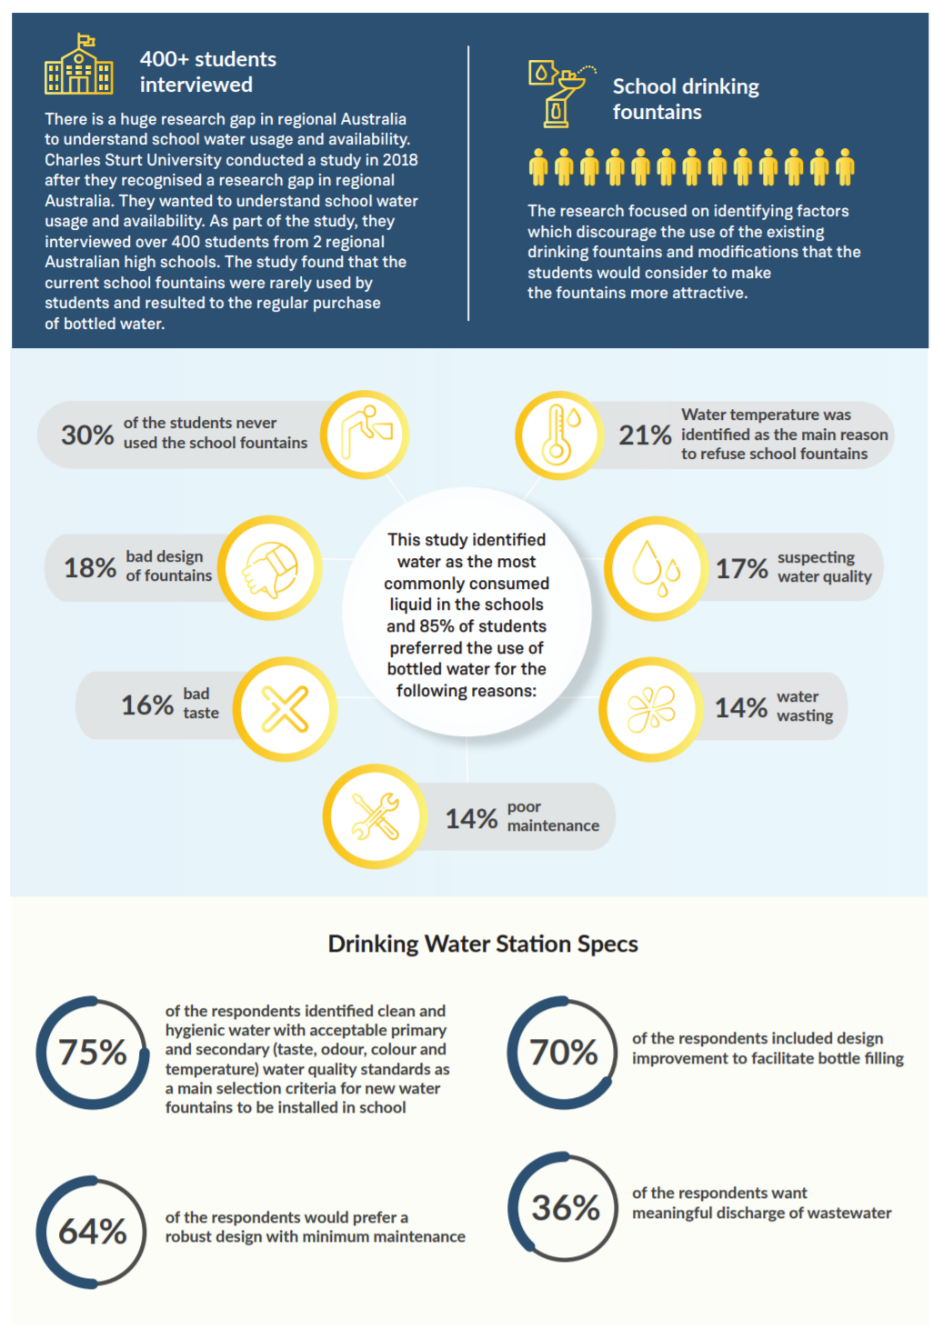 an info graphic tackling topics about why students avoiding drinking water stations